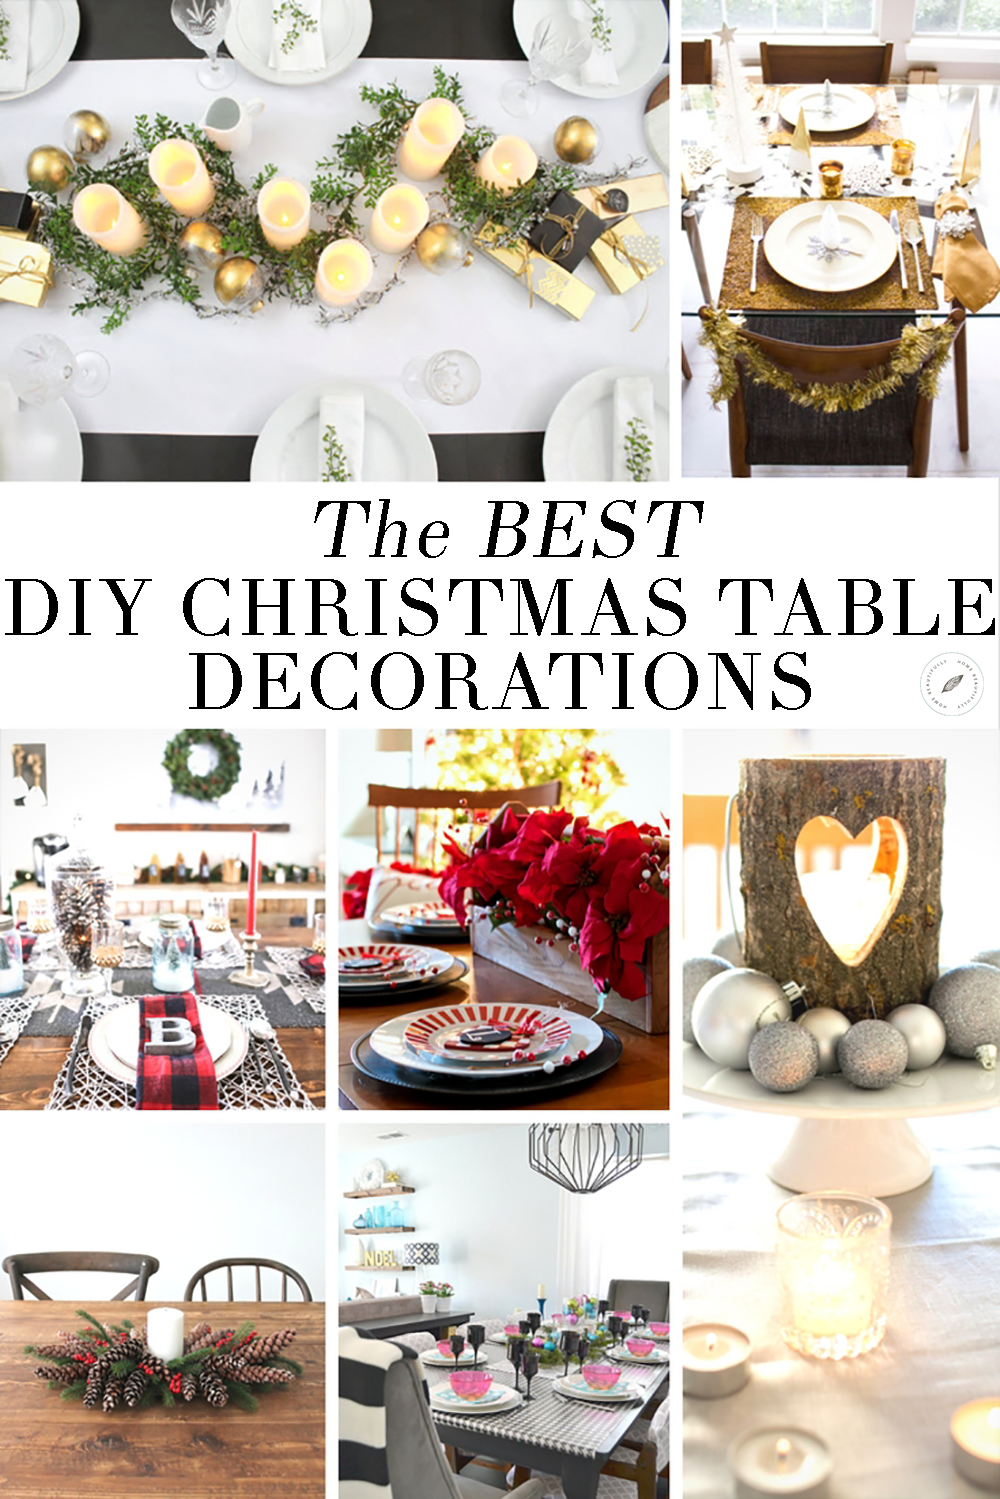 The best diy christmas table decorations diy christmas table diy christmas table decorations love decorating for the holidays these easy affordable do solutioingenieria Gallery